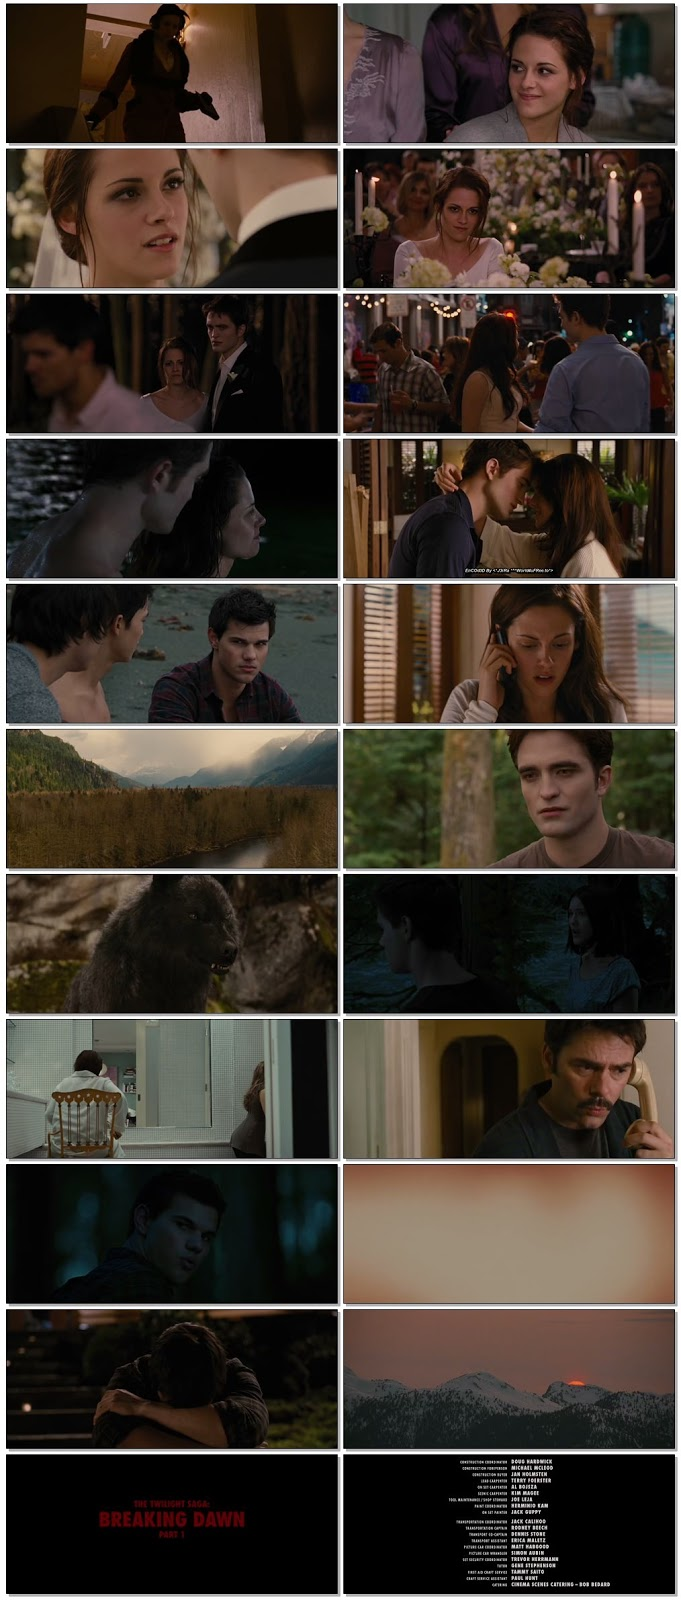 The Twilight Saga Part 1 2011 Full Movie Download In Hindi Dubbed 720p